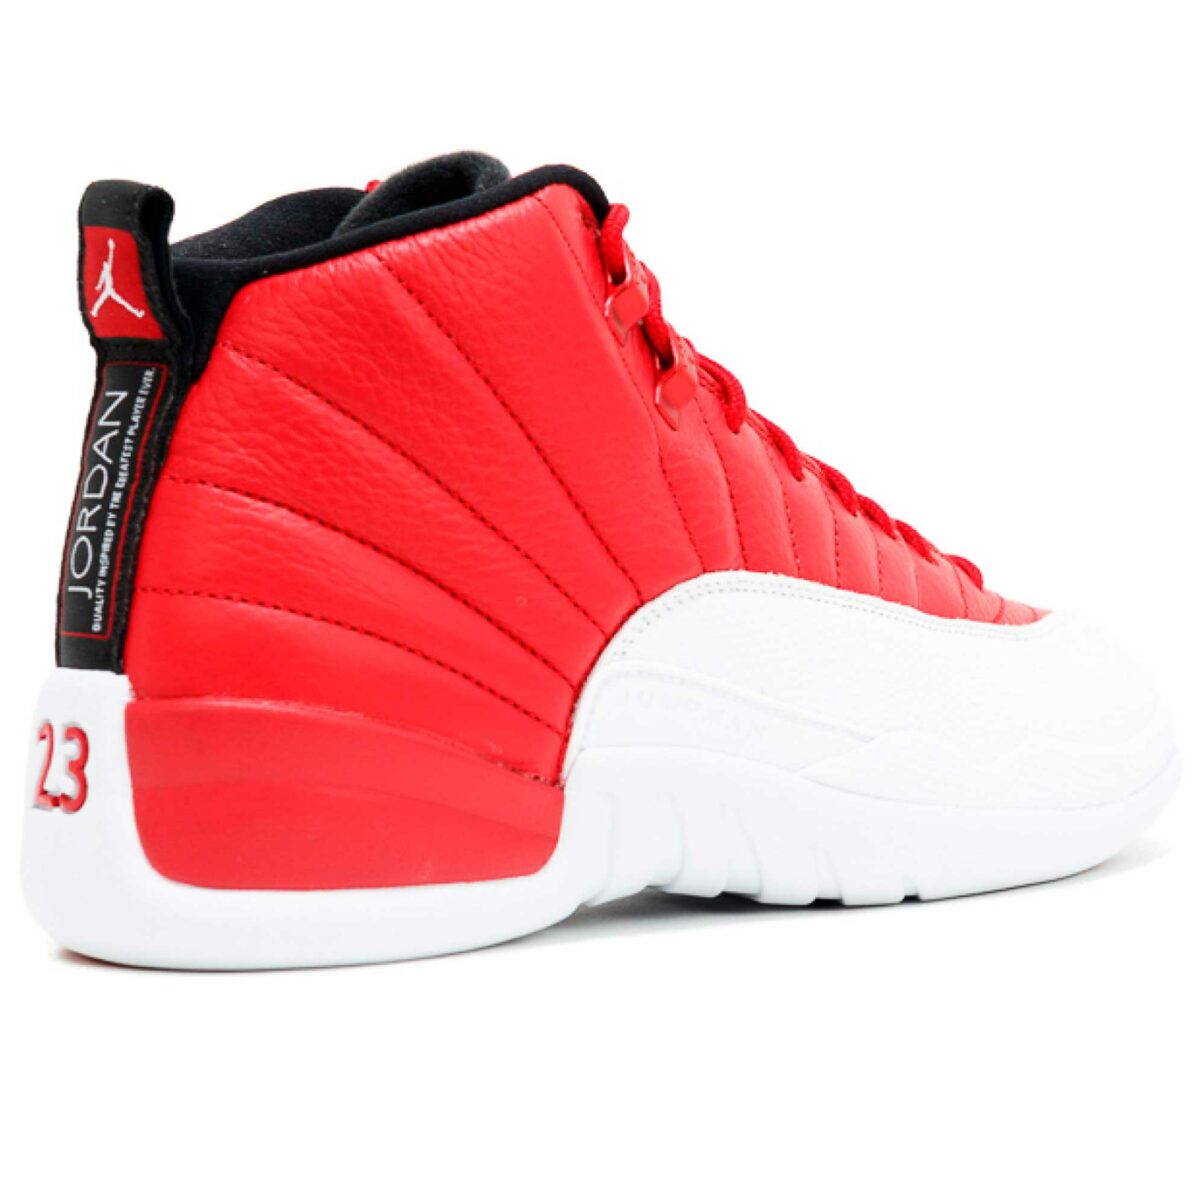 nike air Jordan 12 XII retro gym red 130690-600 купить